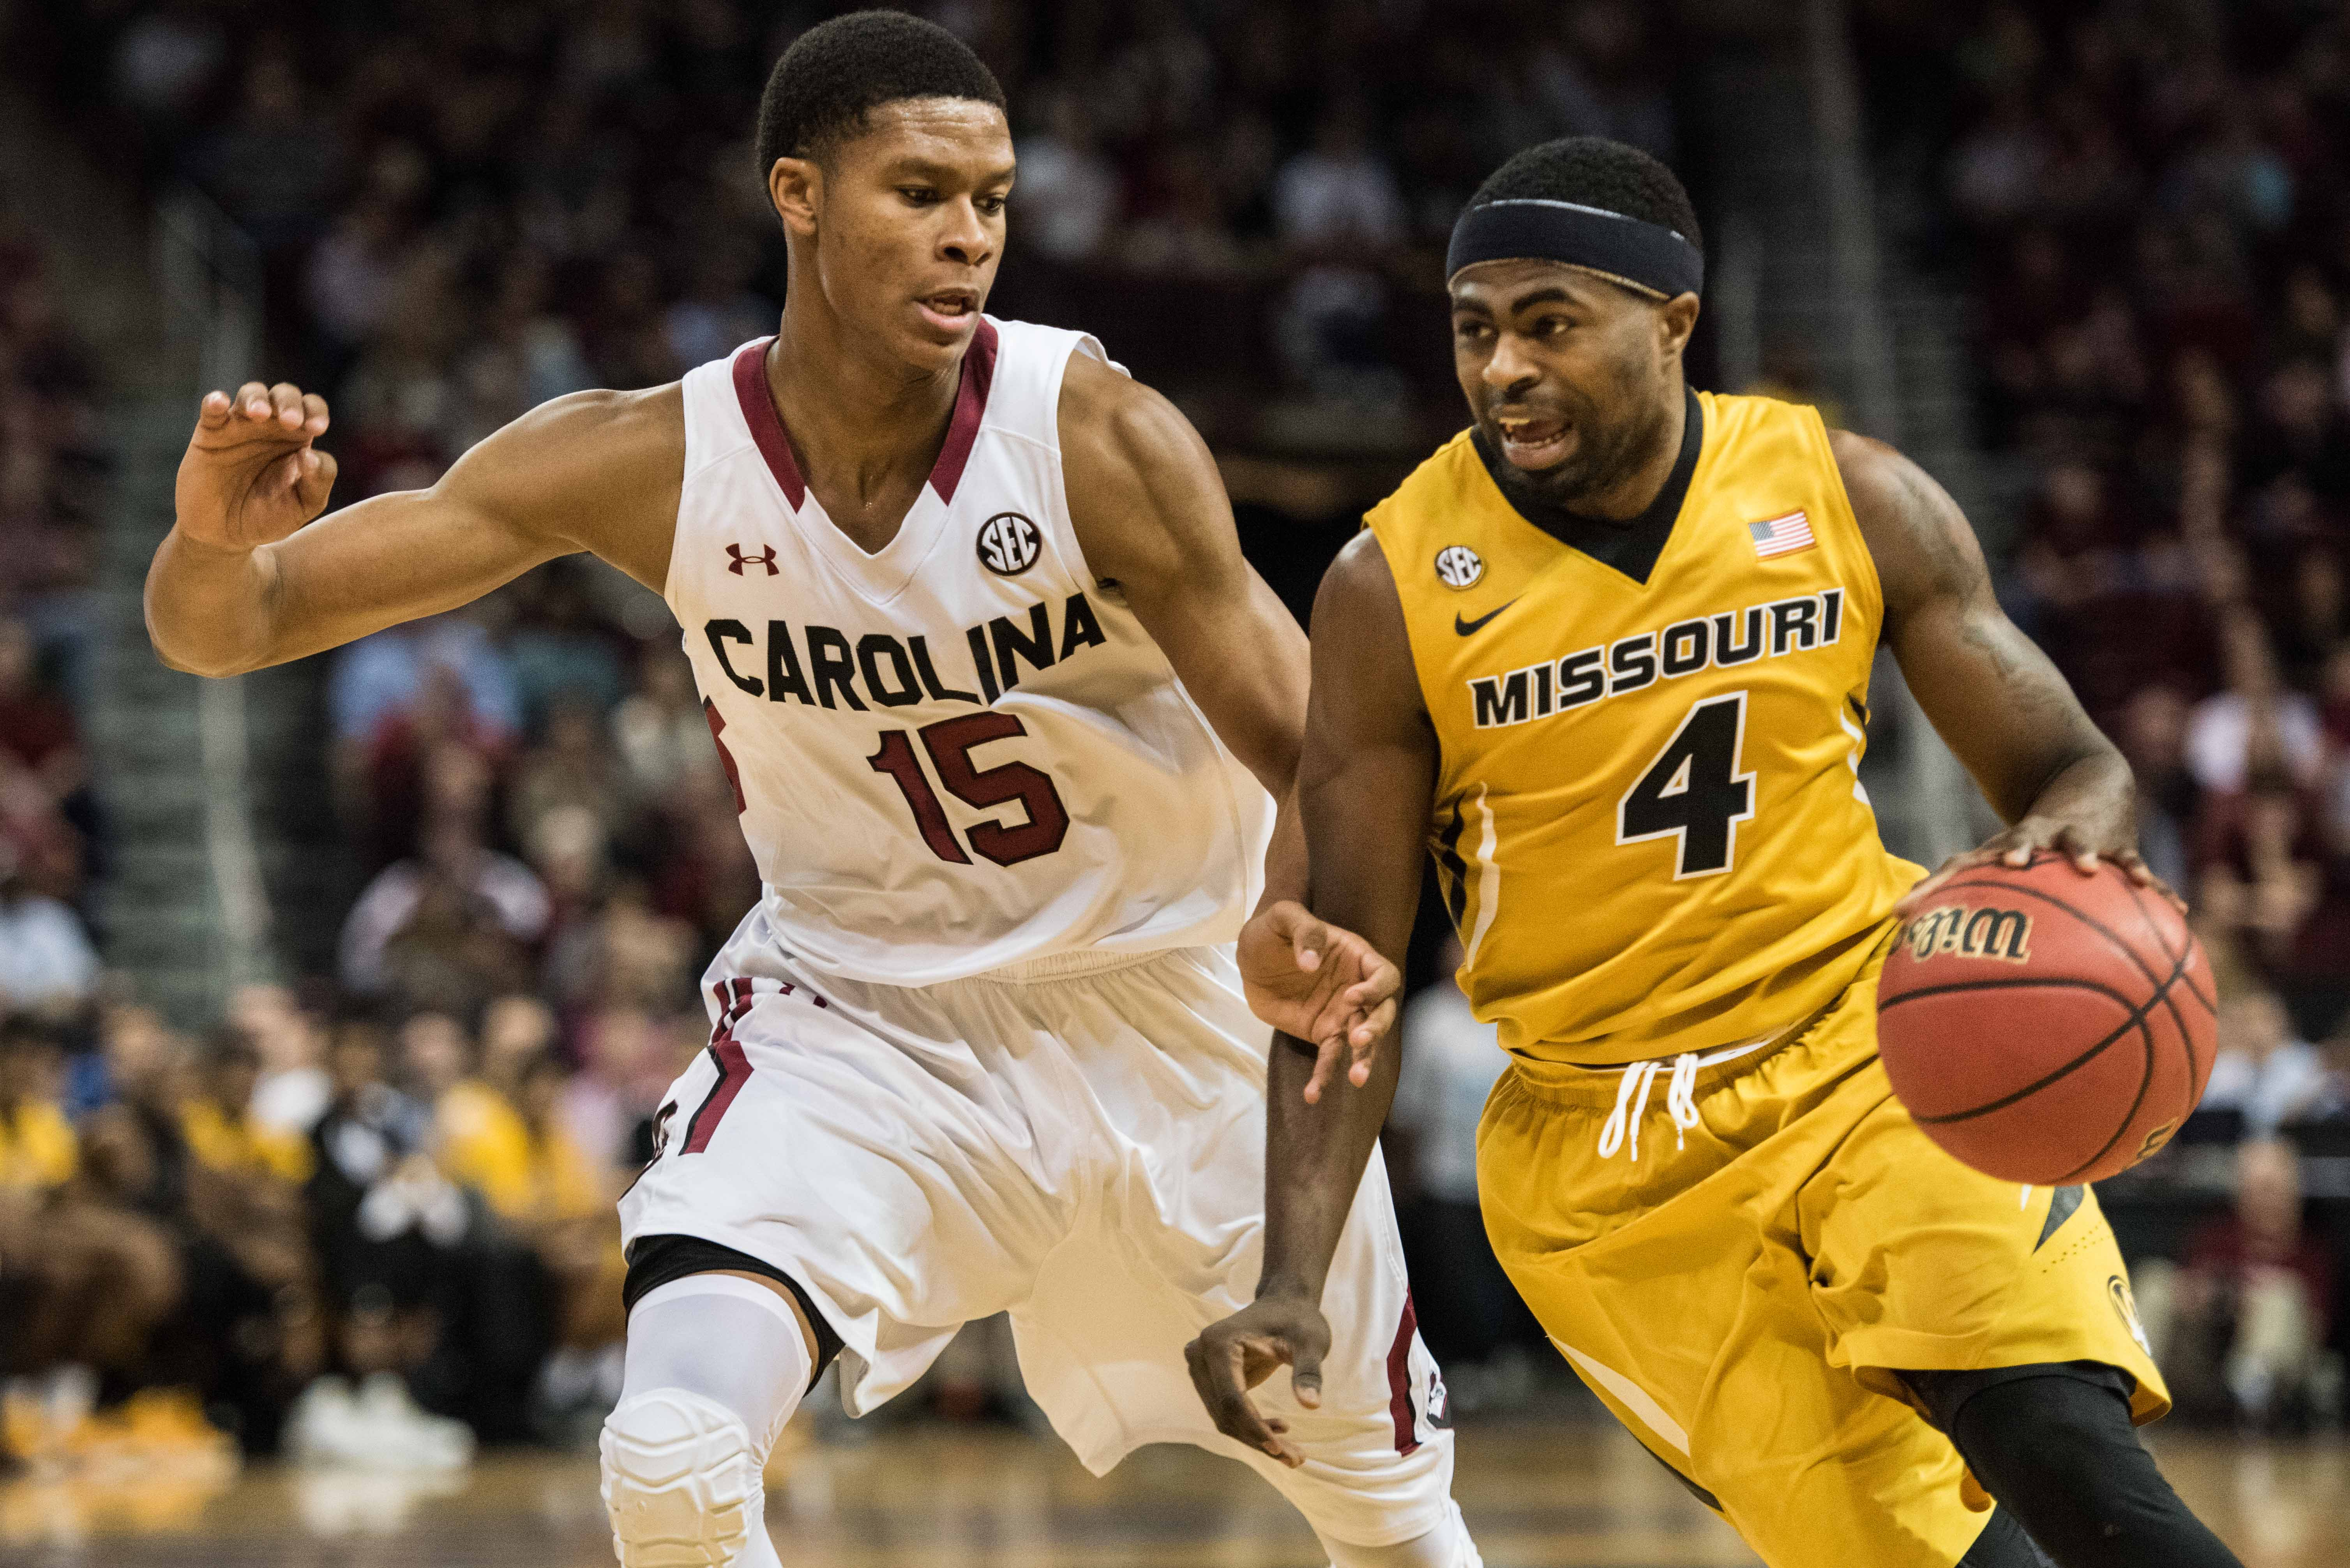 Missouri guard Tramaine Isabelle (4) drives to the hoop against South Carolina guard PJ Dozier (15) during the first half of an NCAA college basketball game Saturday, Jan. 16, 2016, in Columbia, S.C. (AP Photo/Sean Rayford)